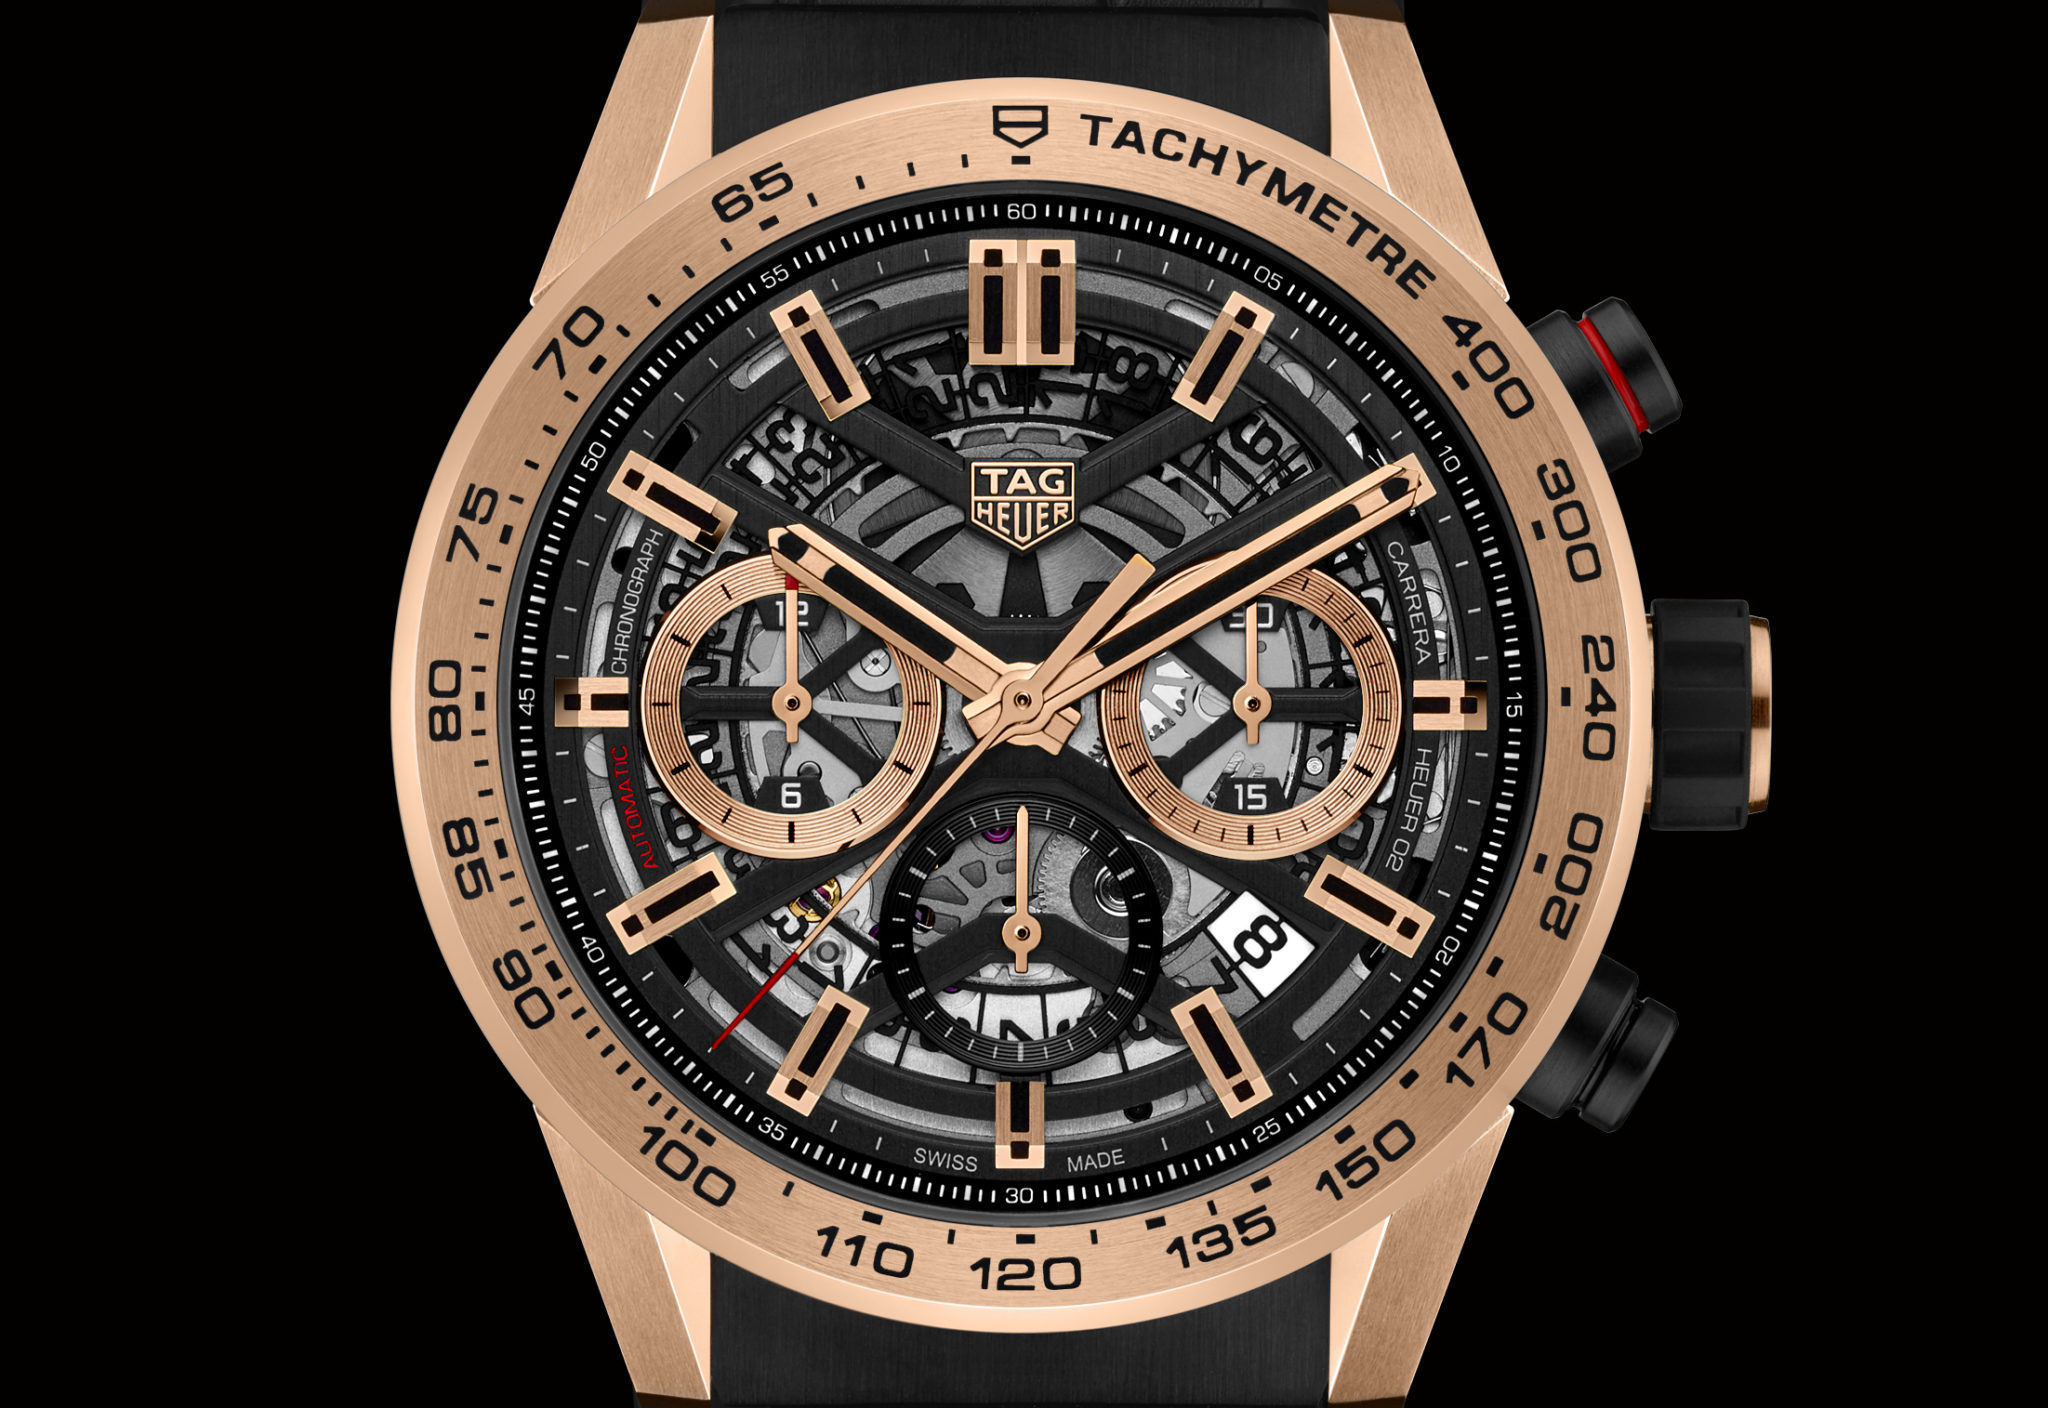 low priced 9efc8 28f36 TAG Heuer retailers look forward to a highly commercial Carrera collection  in 2018